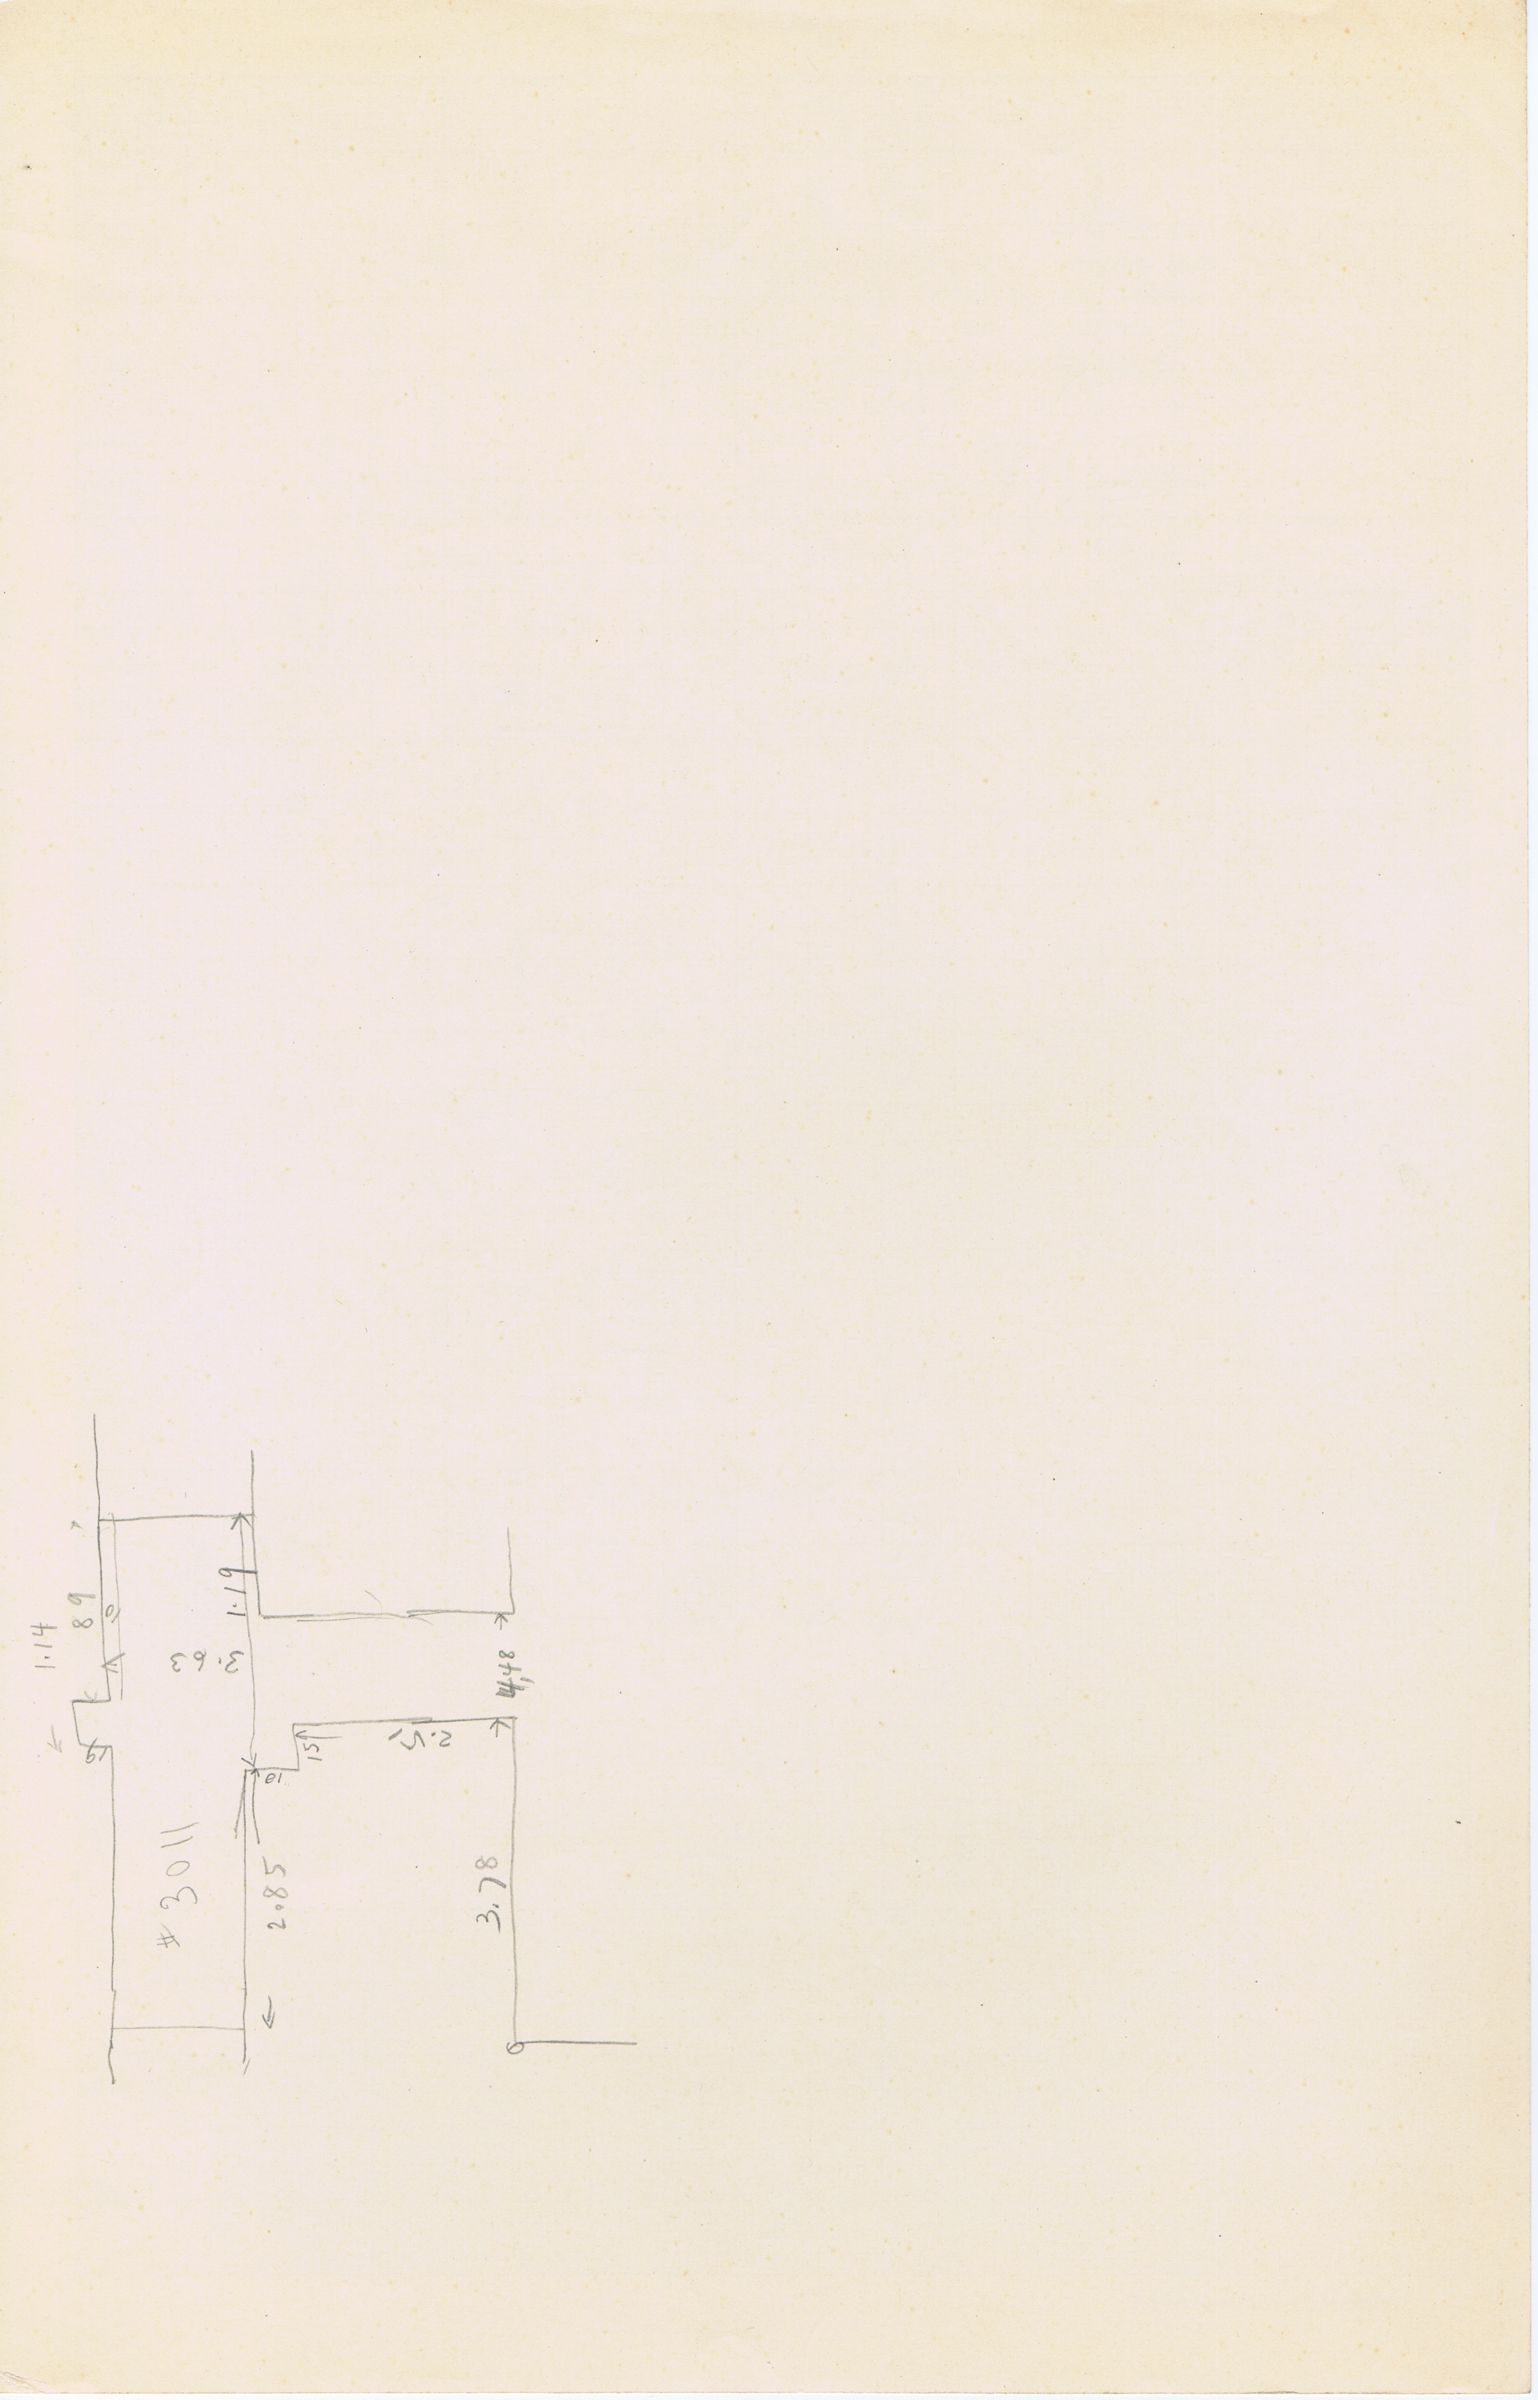 Maps and plans: Sketch plan of G 3011